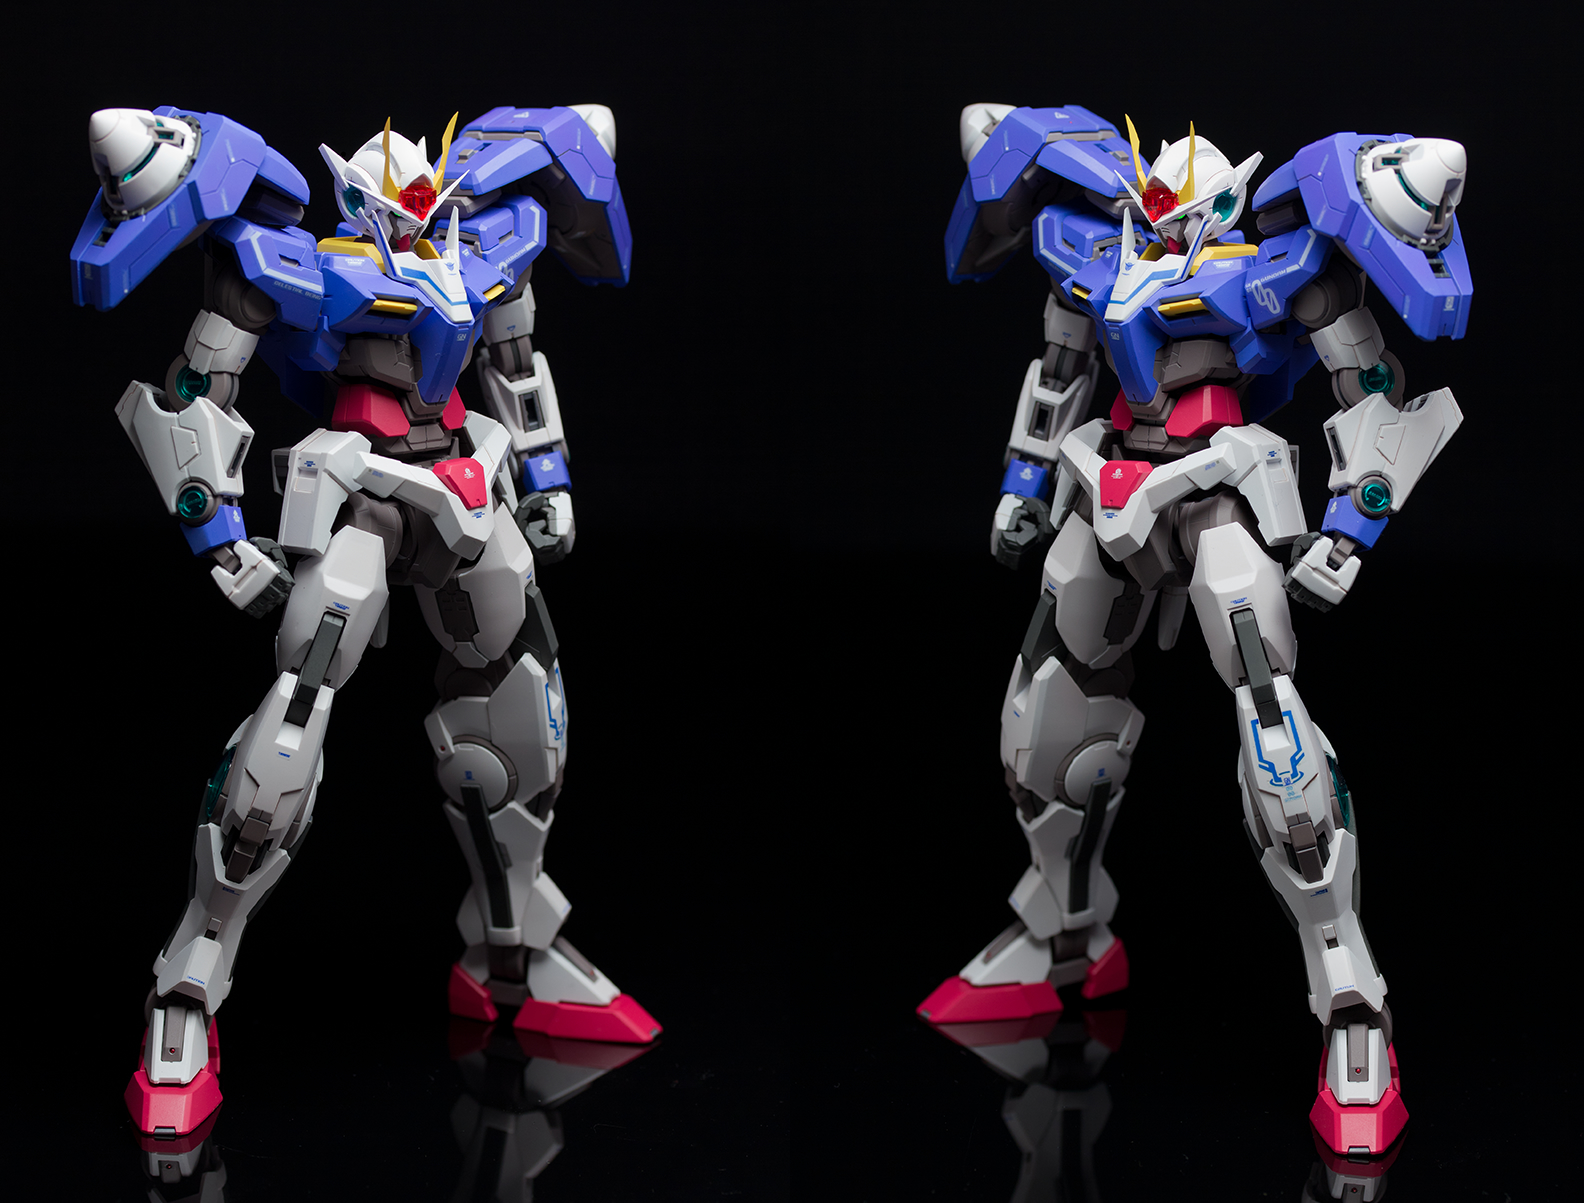 Tumacher Gunpla Inochi Mg Gundam 00 Raiser Review By Miyuyatuki Already Released